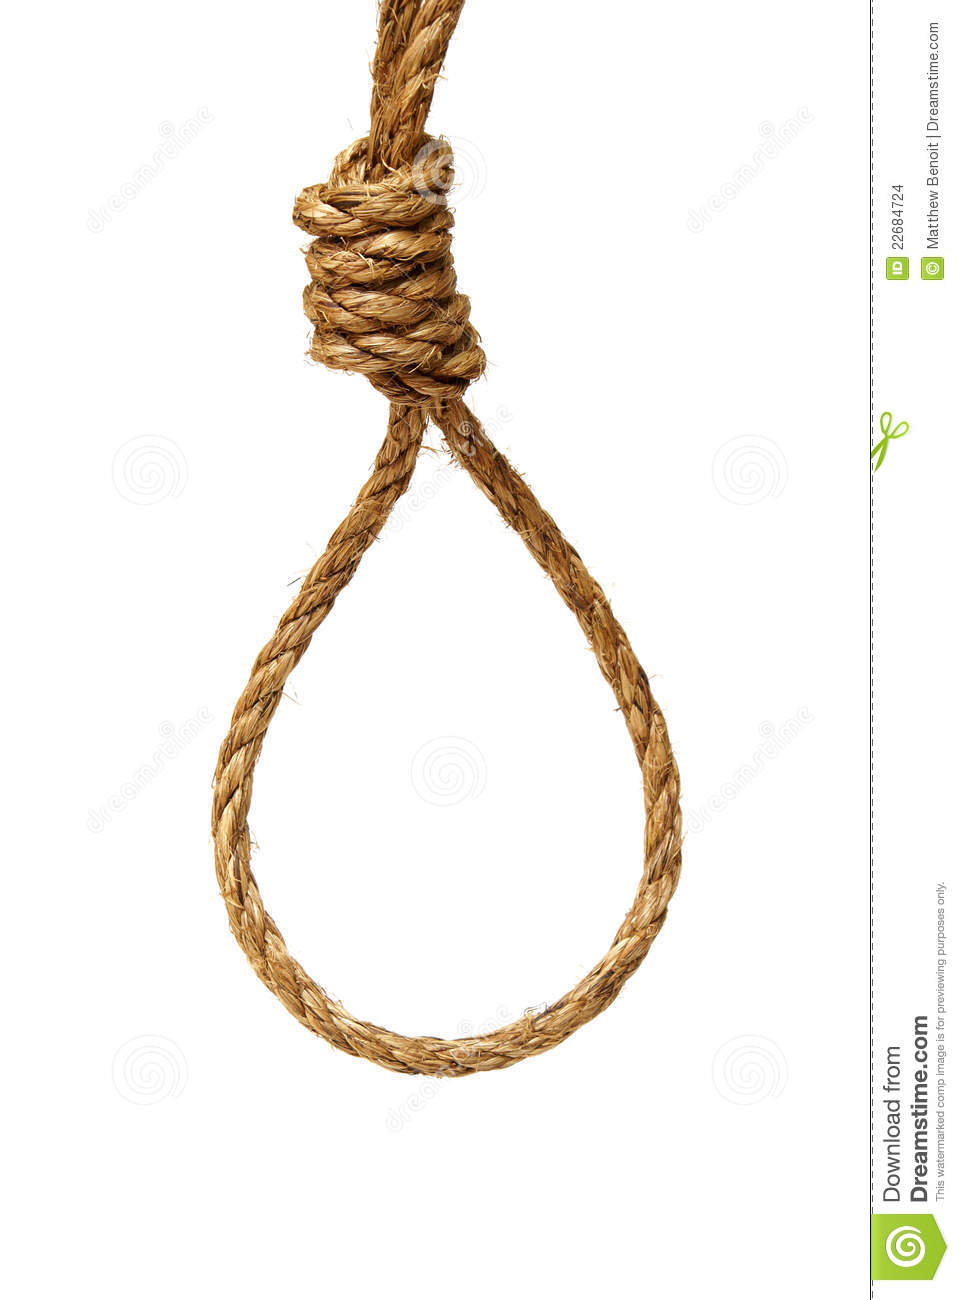 Hangmans rope